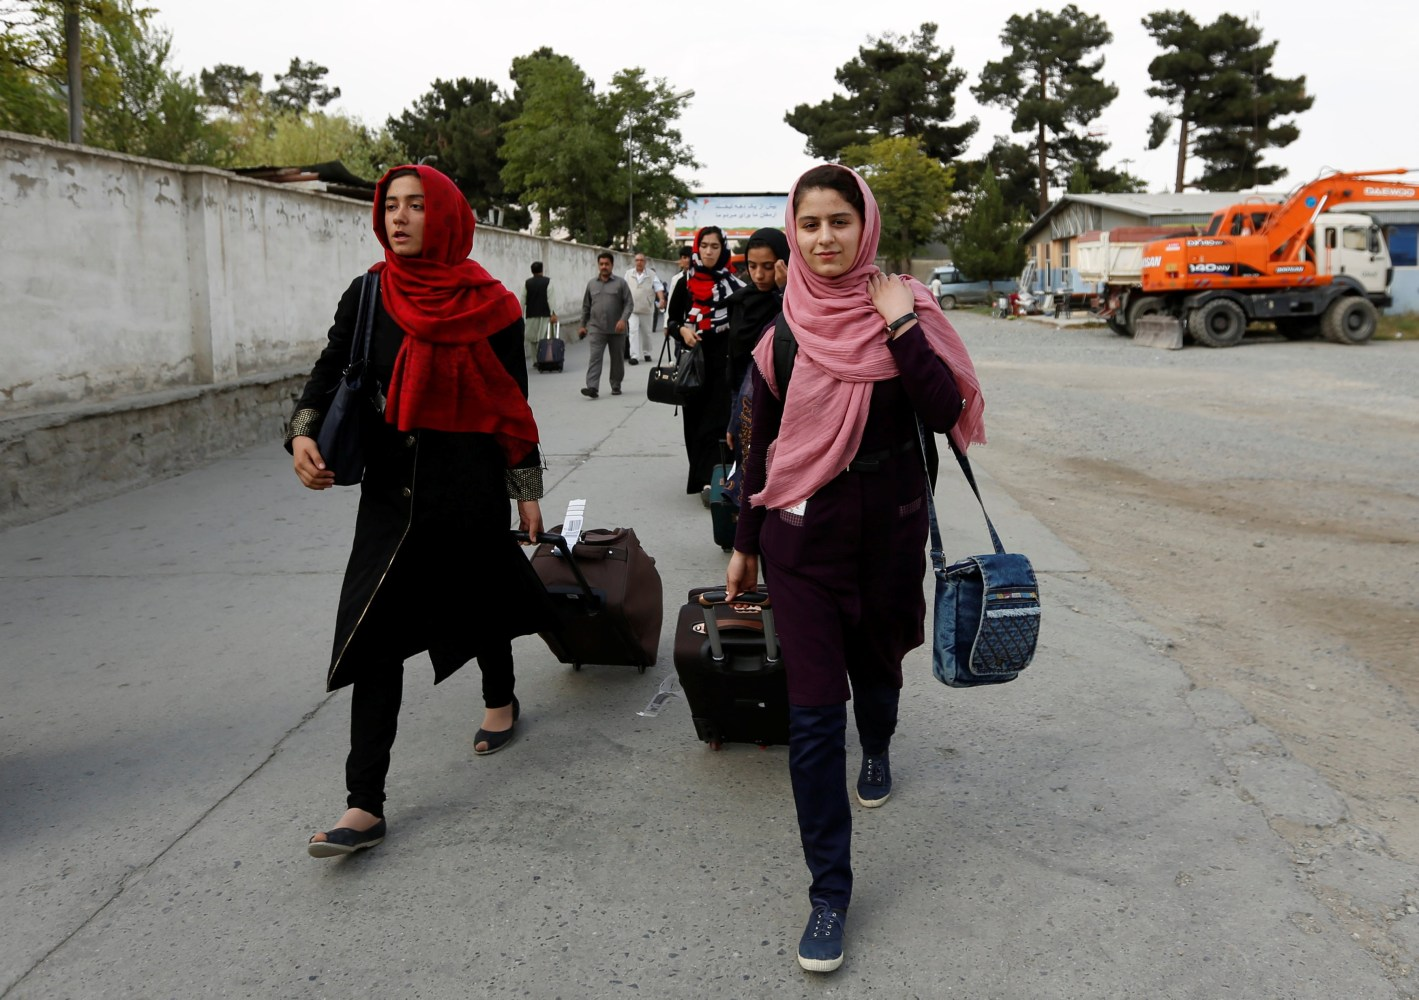 Female Afghan Robotics Team Gets Donald Trump Assist